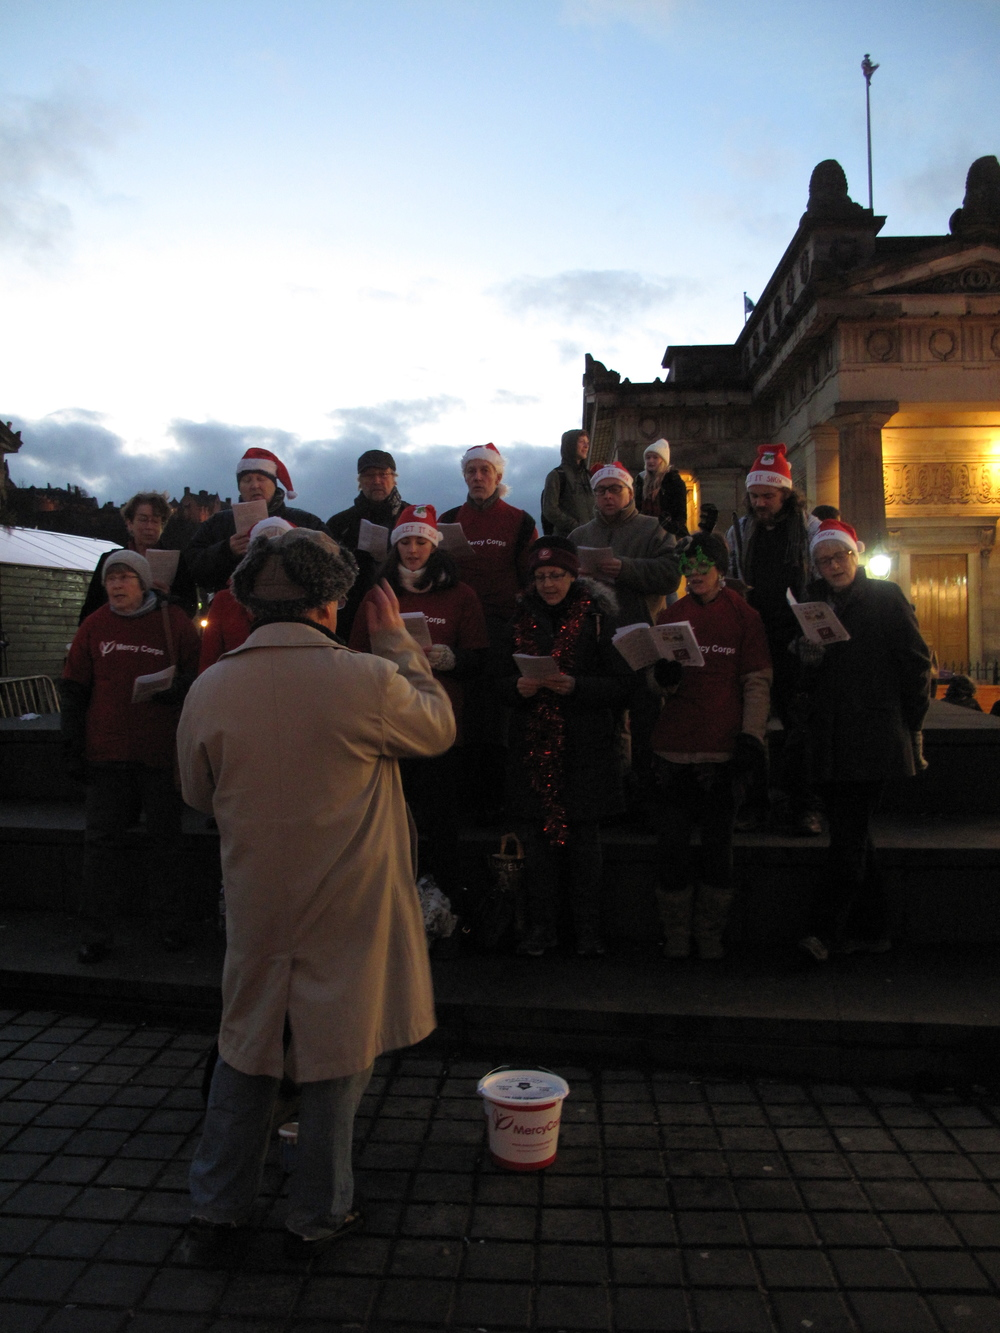 Carol singing choir at the Edinburgh Christmas Market at night.